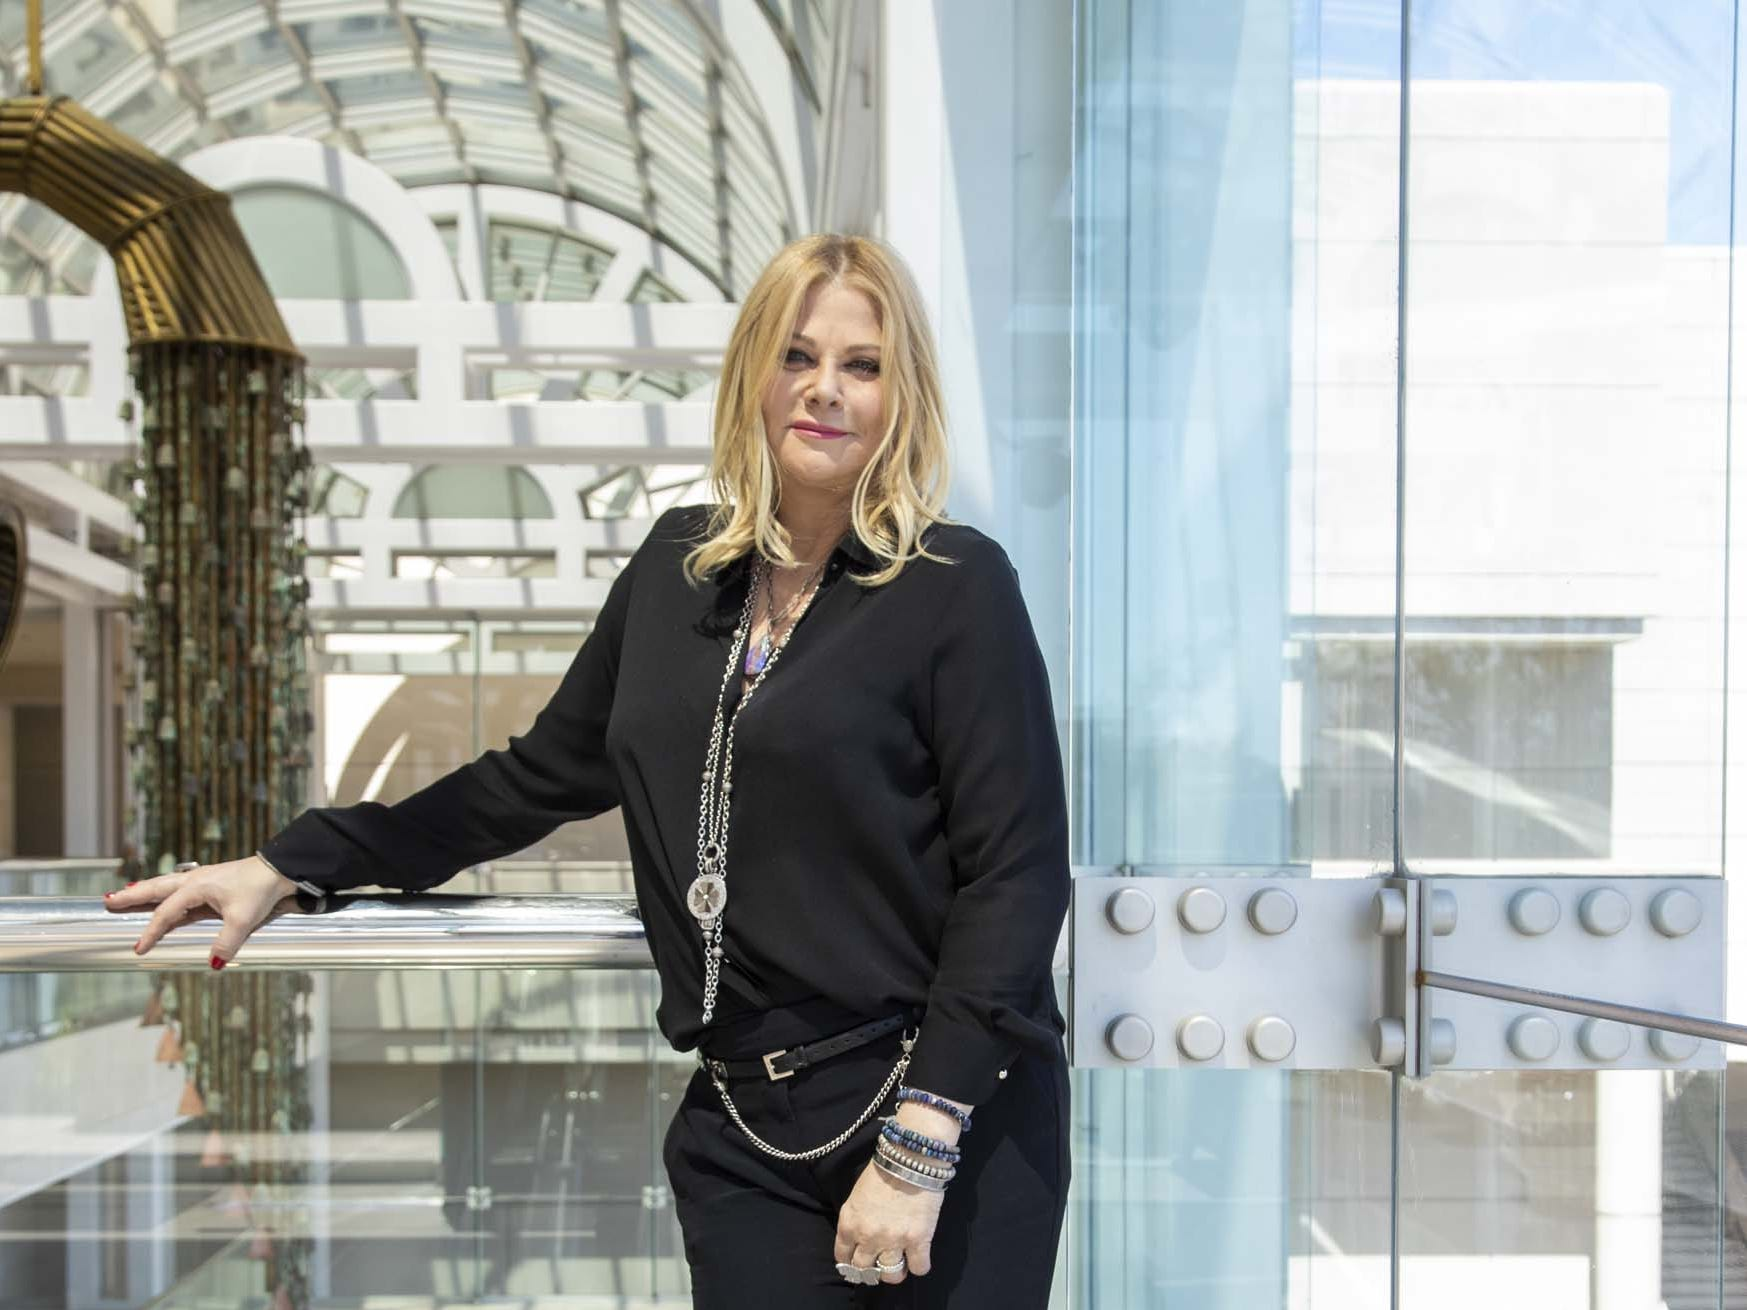 Sheryl Lowe, jewelry designer and wife to actor Rob Lowe, introduces their new men's jewelry collection at Scottsdale Fashion Square exclusively to Neiman Marcus on March 28, 2019.